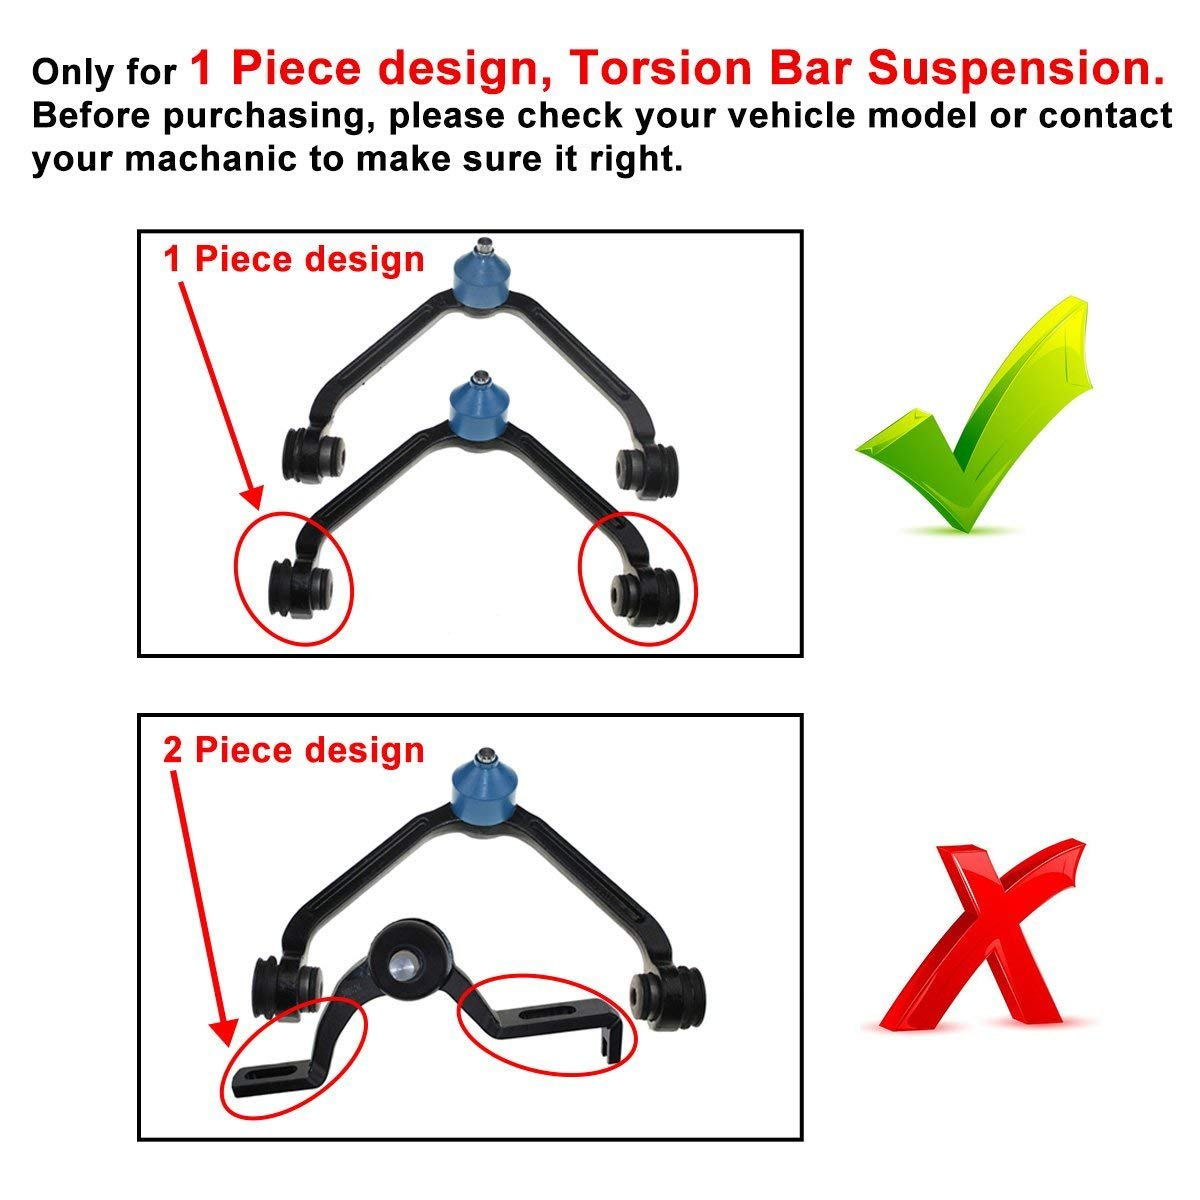 1 piece design DLZ 6 Pcs Front Suspension Kit-Upper Control Arm Lower Ball Joint Sway Bar Compatible with 1998-2001 Ford Ranger 1995-2003 Ford Explorer 1997-2001 Mercury Mountaineer 99-01 Mazda B2500